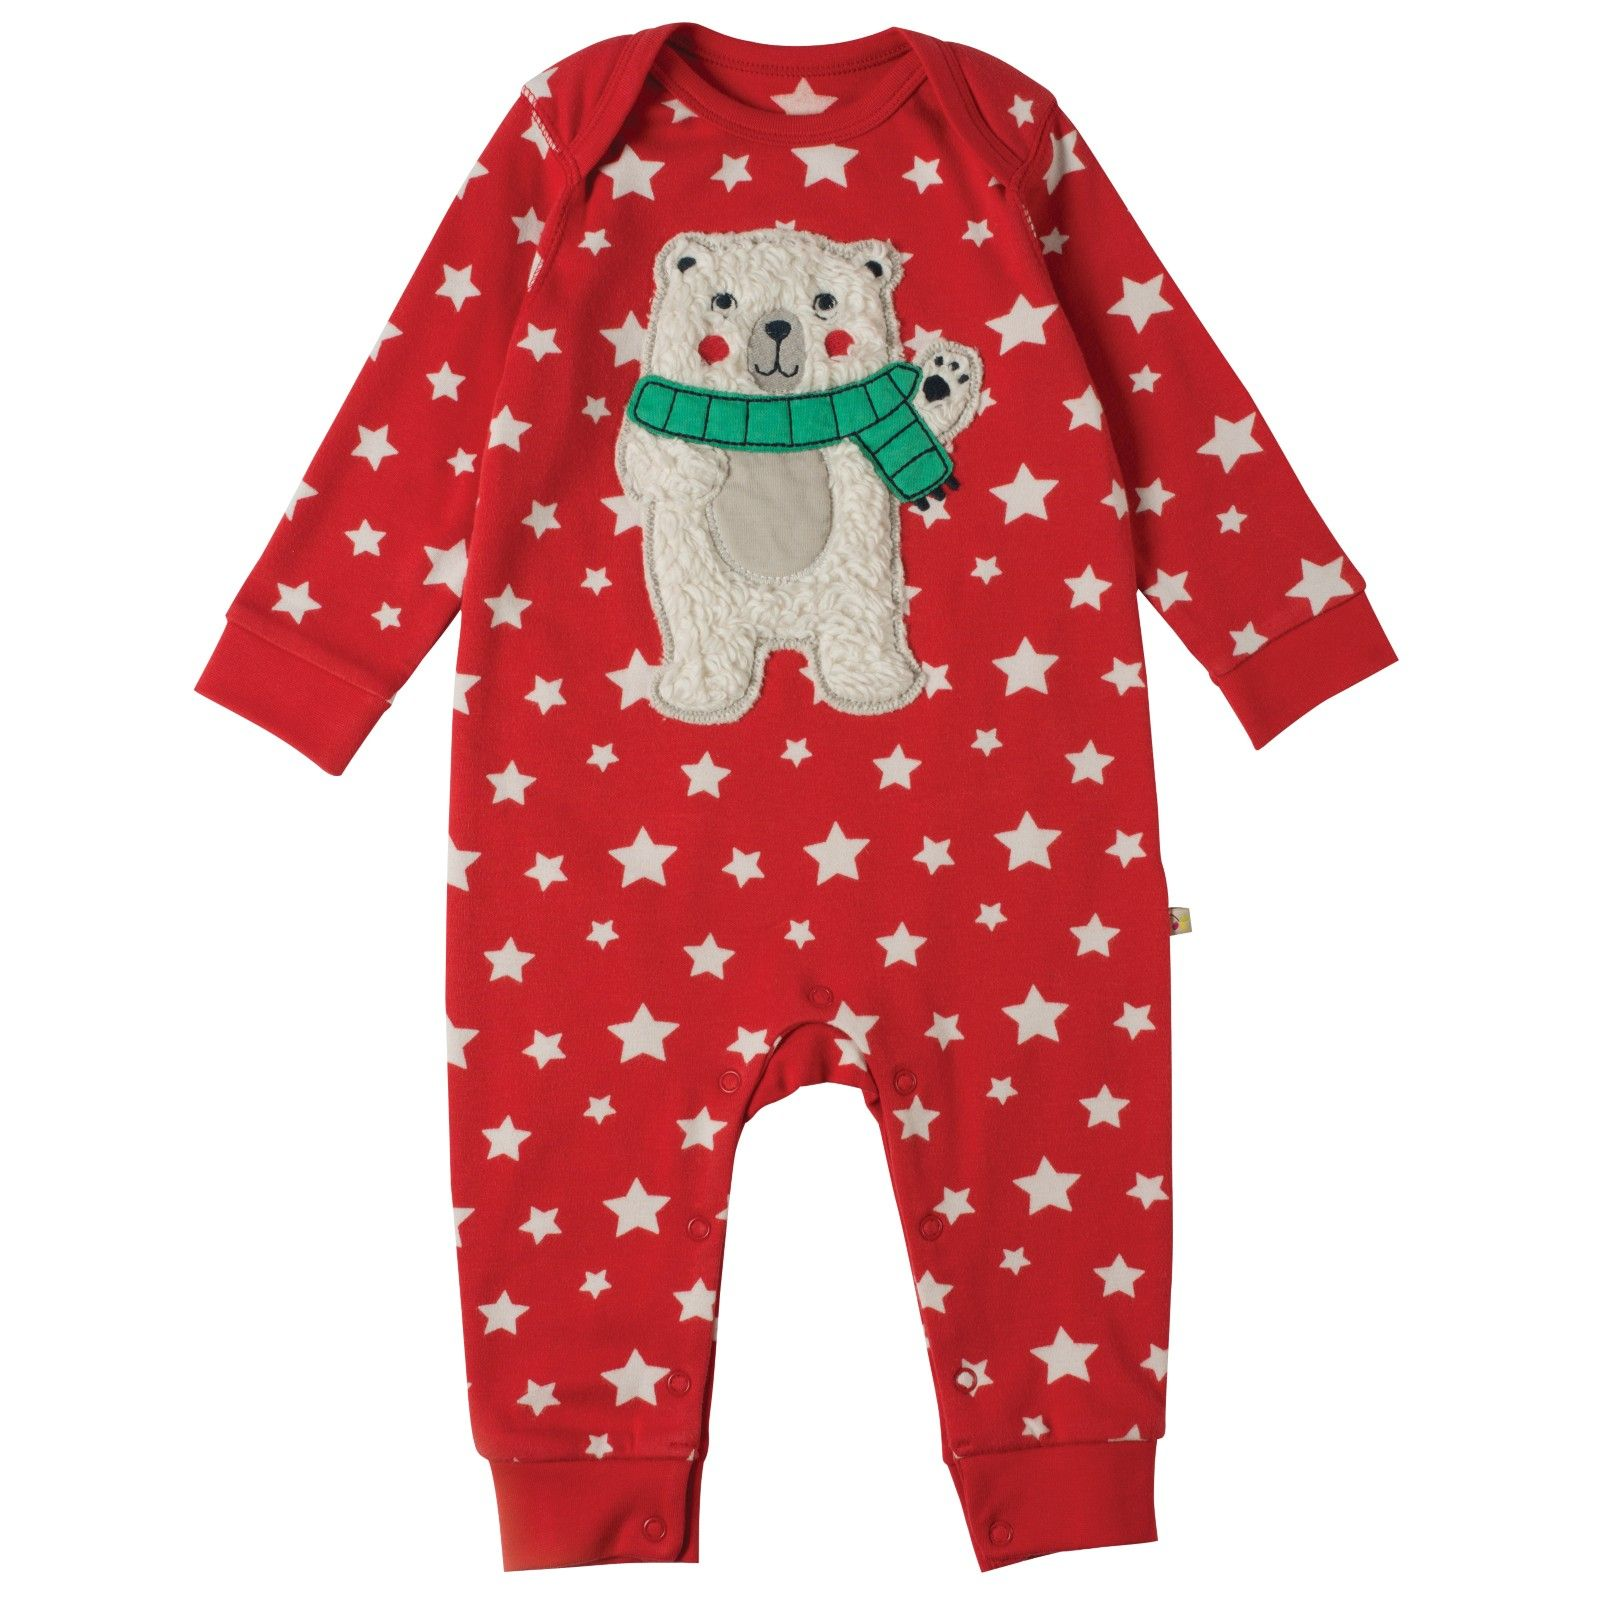 This red starry playsuit with a cuddly polar bear applique is perfect for  tiny tots. This festive romper will look great at Christmas and throughout  the ... f3ae5c8a4